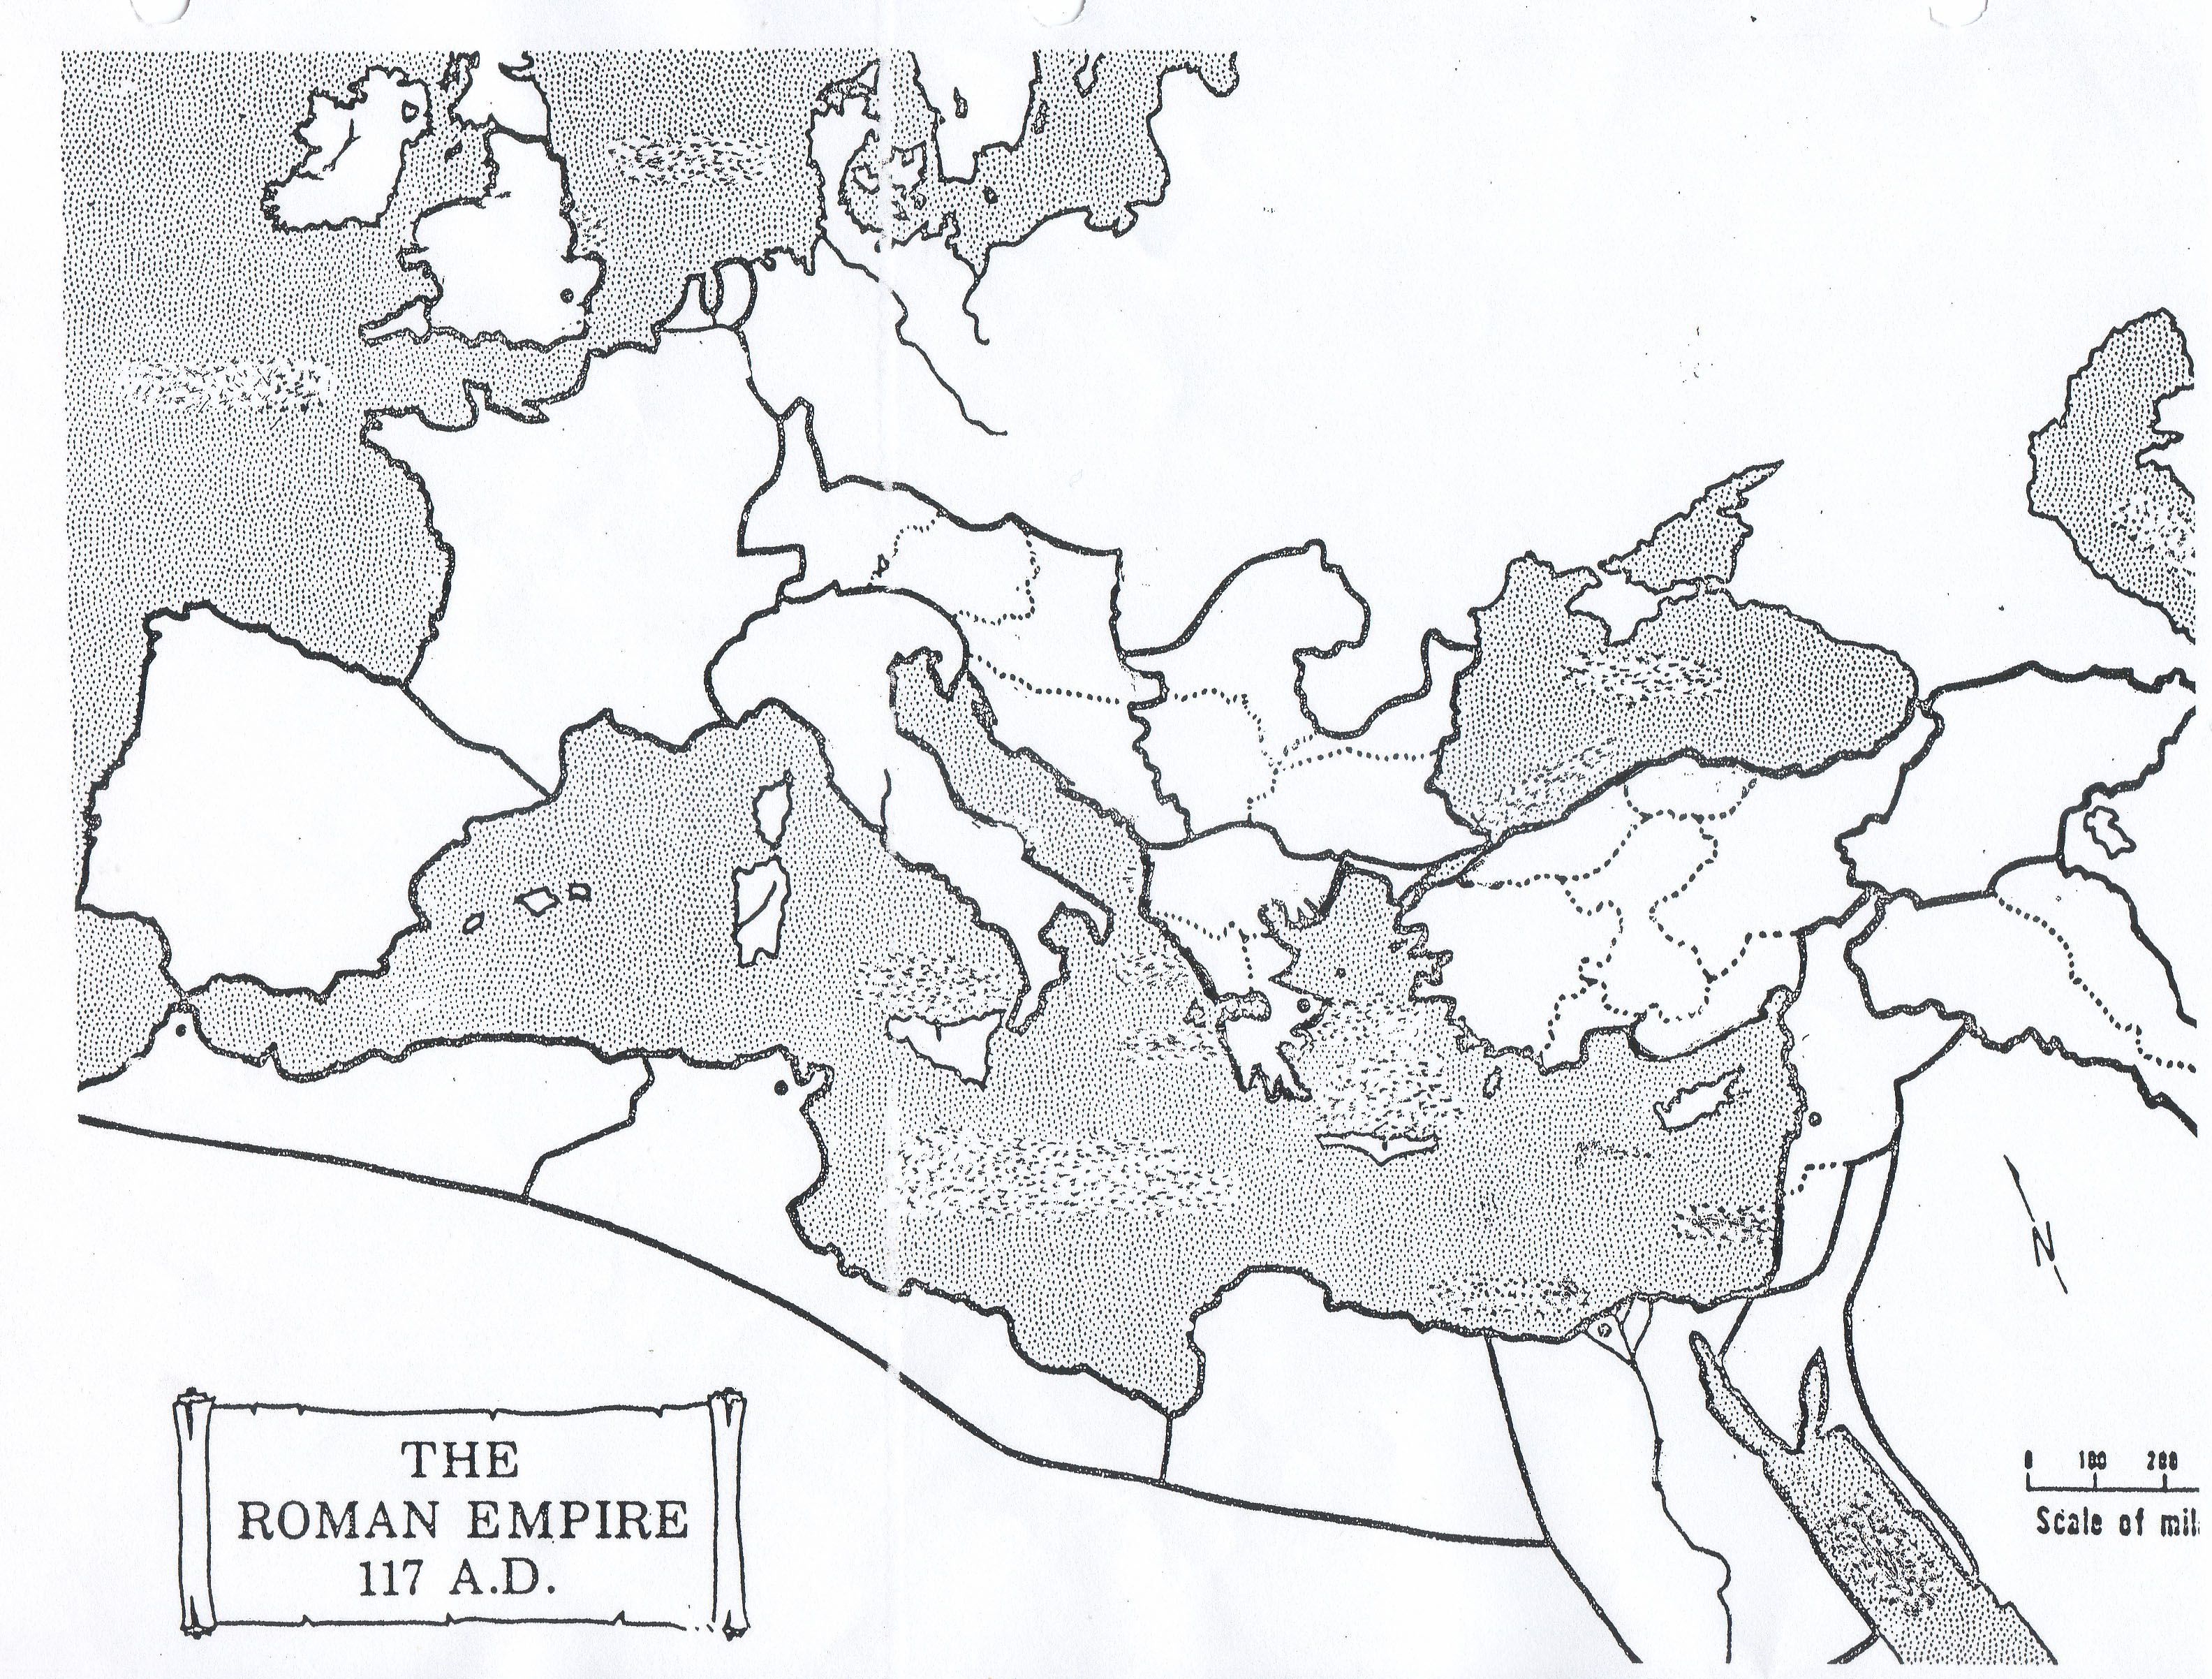 Delicate image intended for printable map of ancient rome